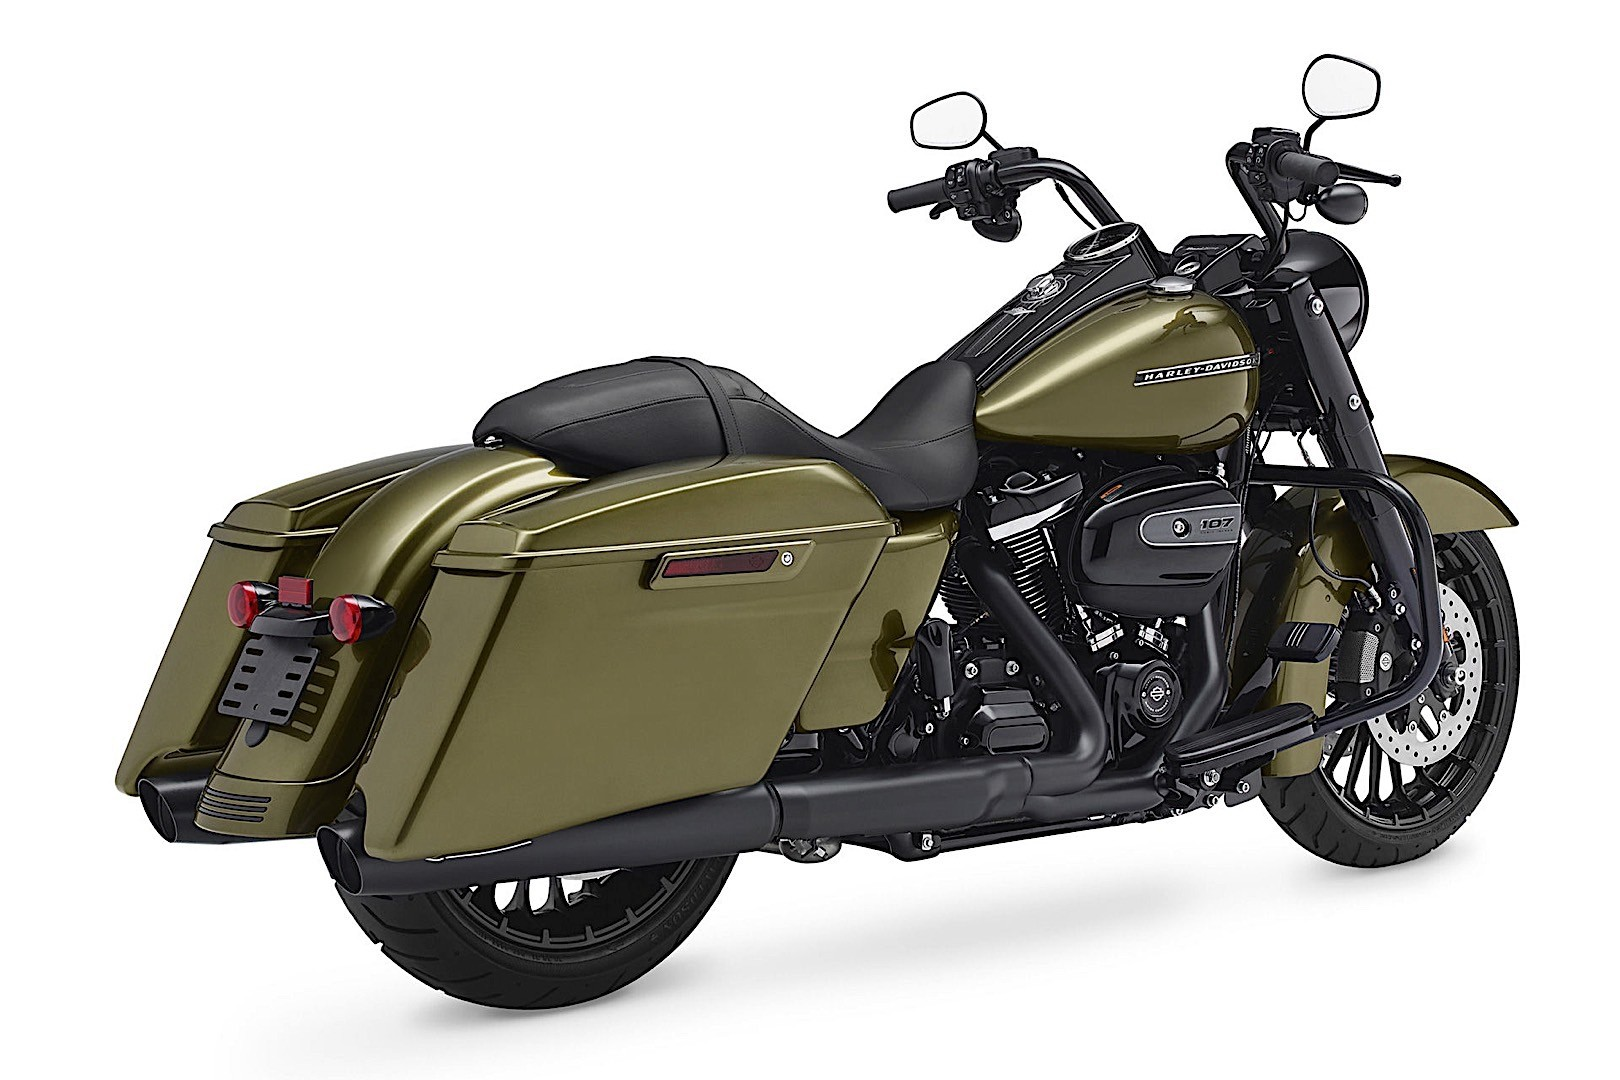 harley davidson introduces 2017 road king special. Black Bedroom Furniture Sets. Home Design Ideas